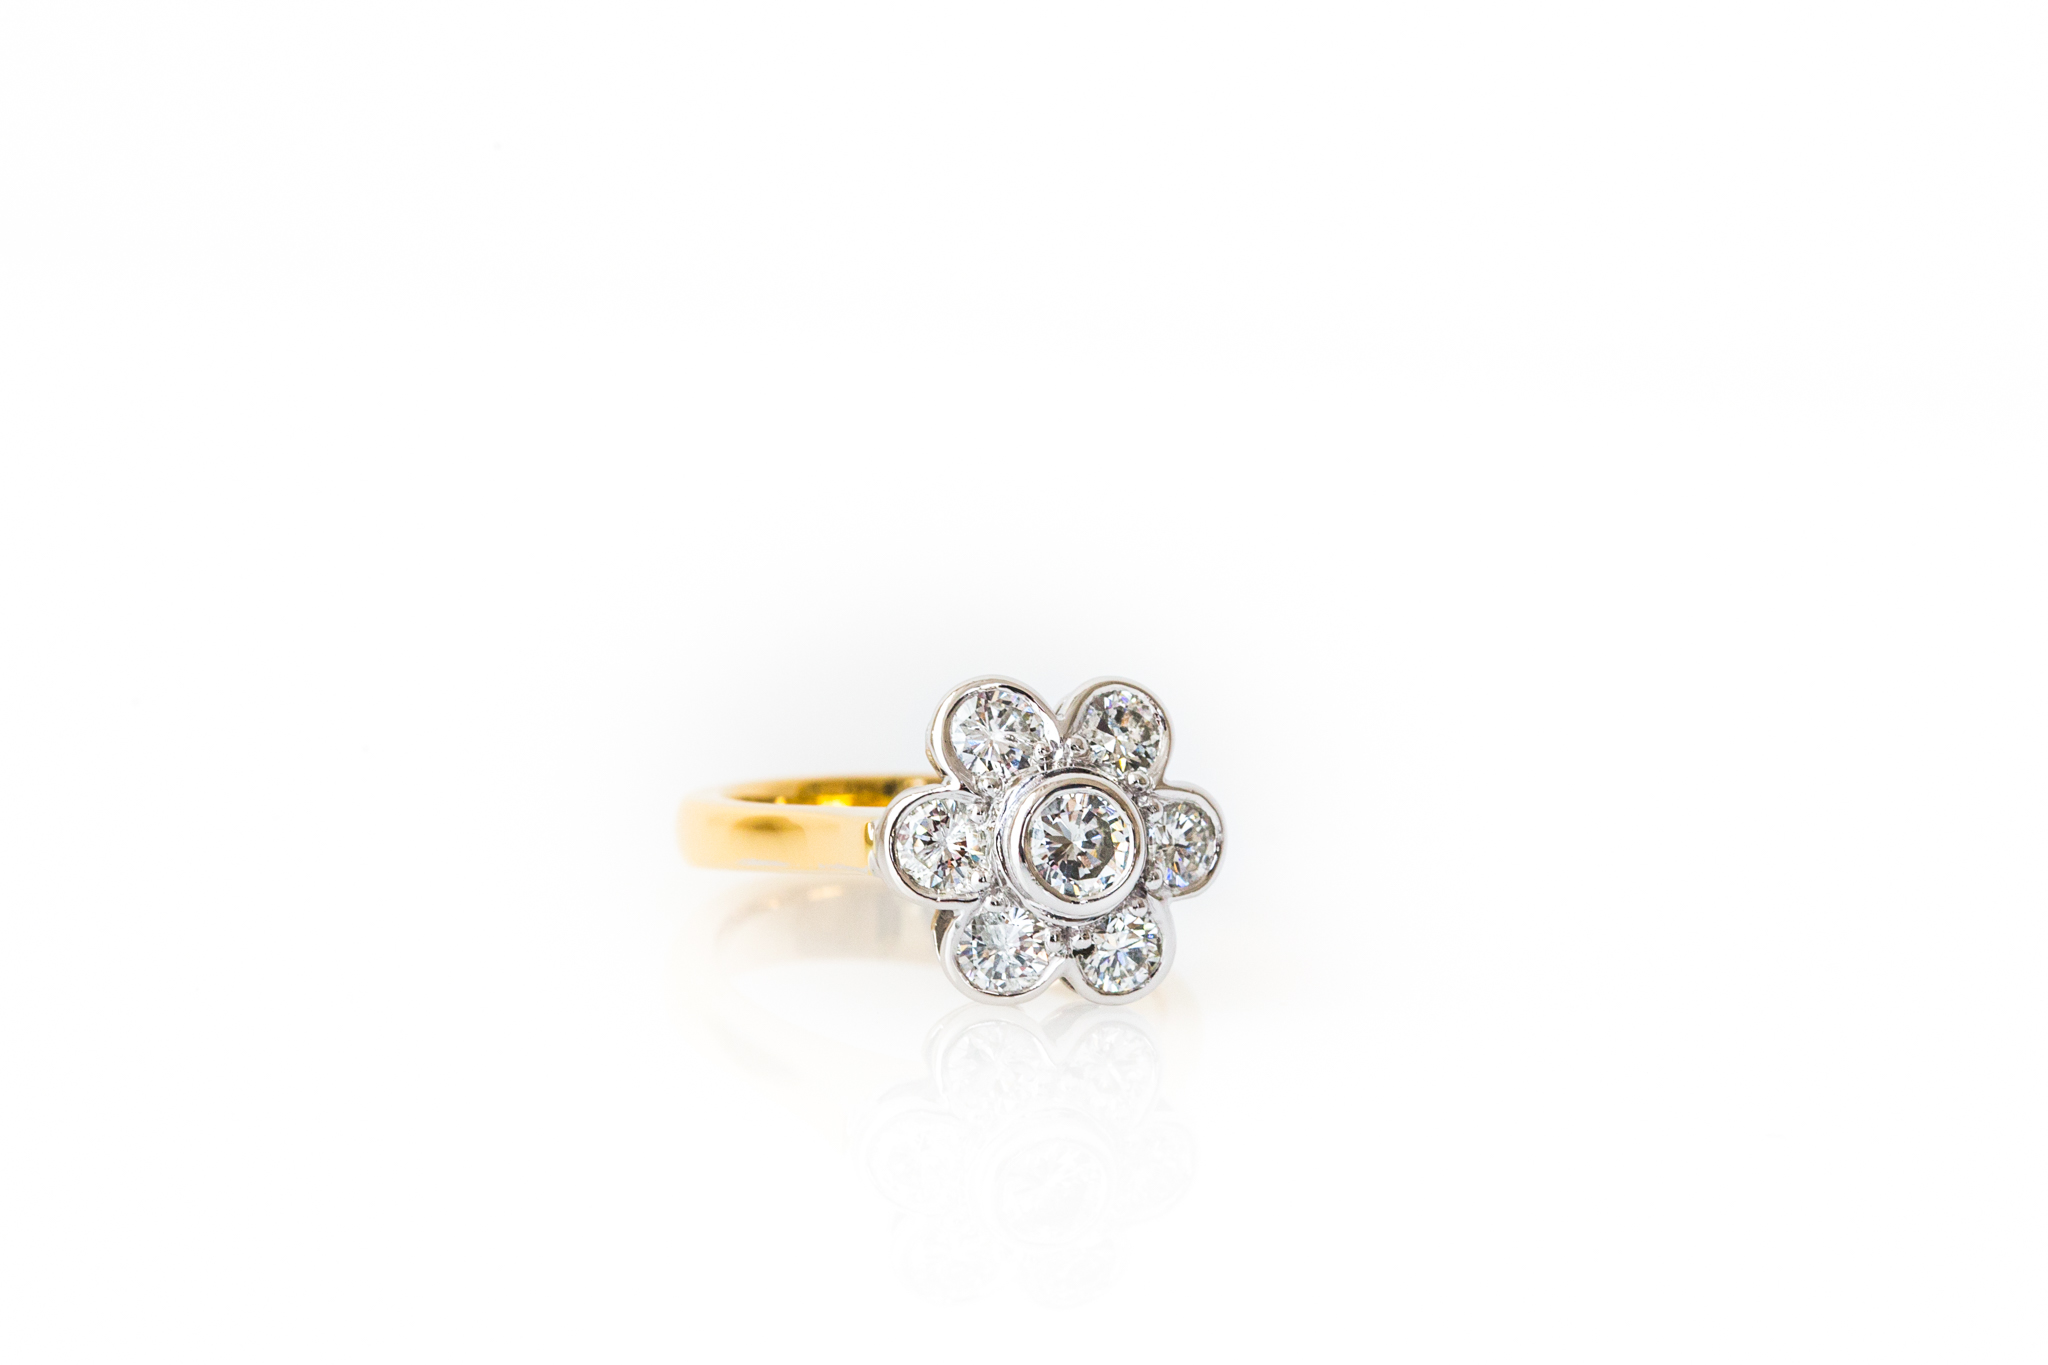 Yellow gold cluster dress ring, featuring a white gold setting which showcases the diamonds - Harlequin Jewellers